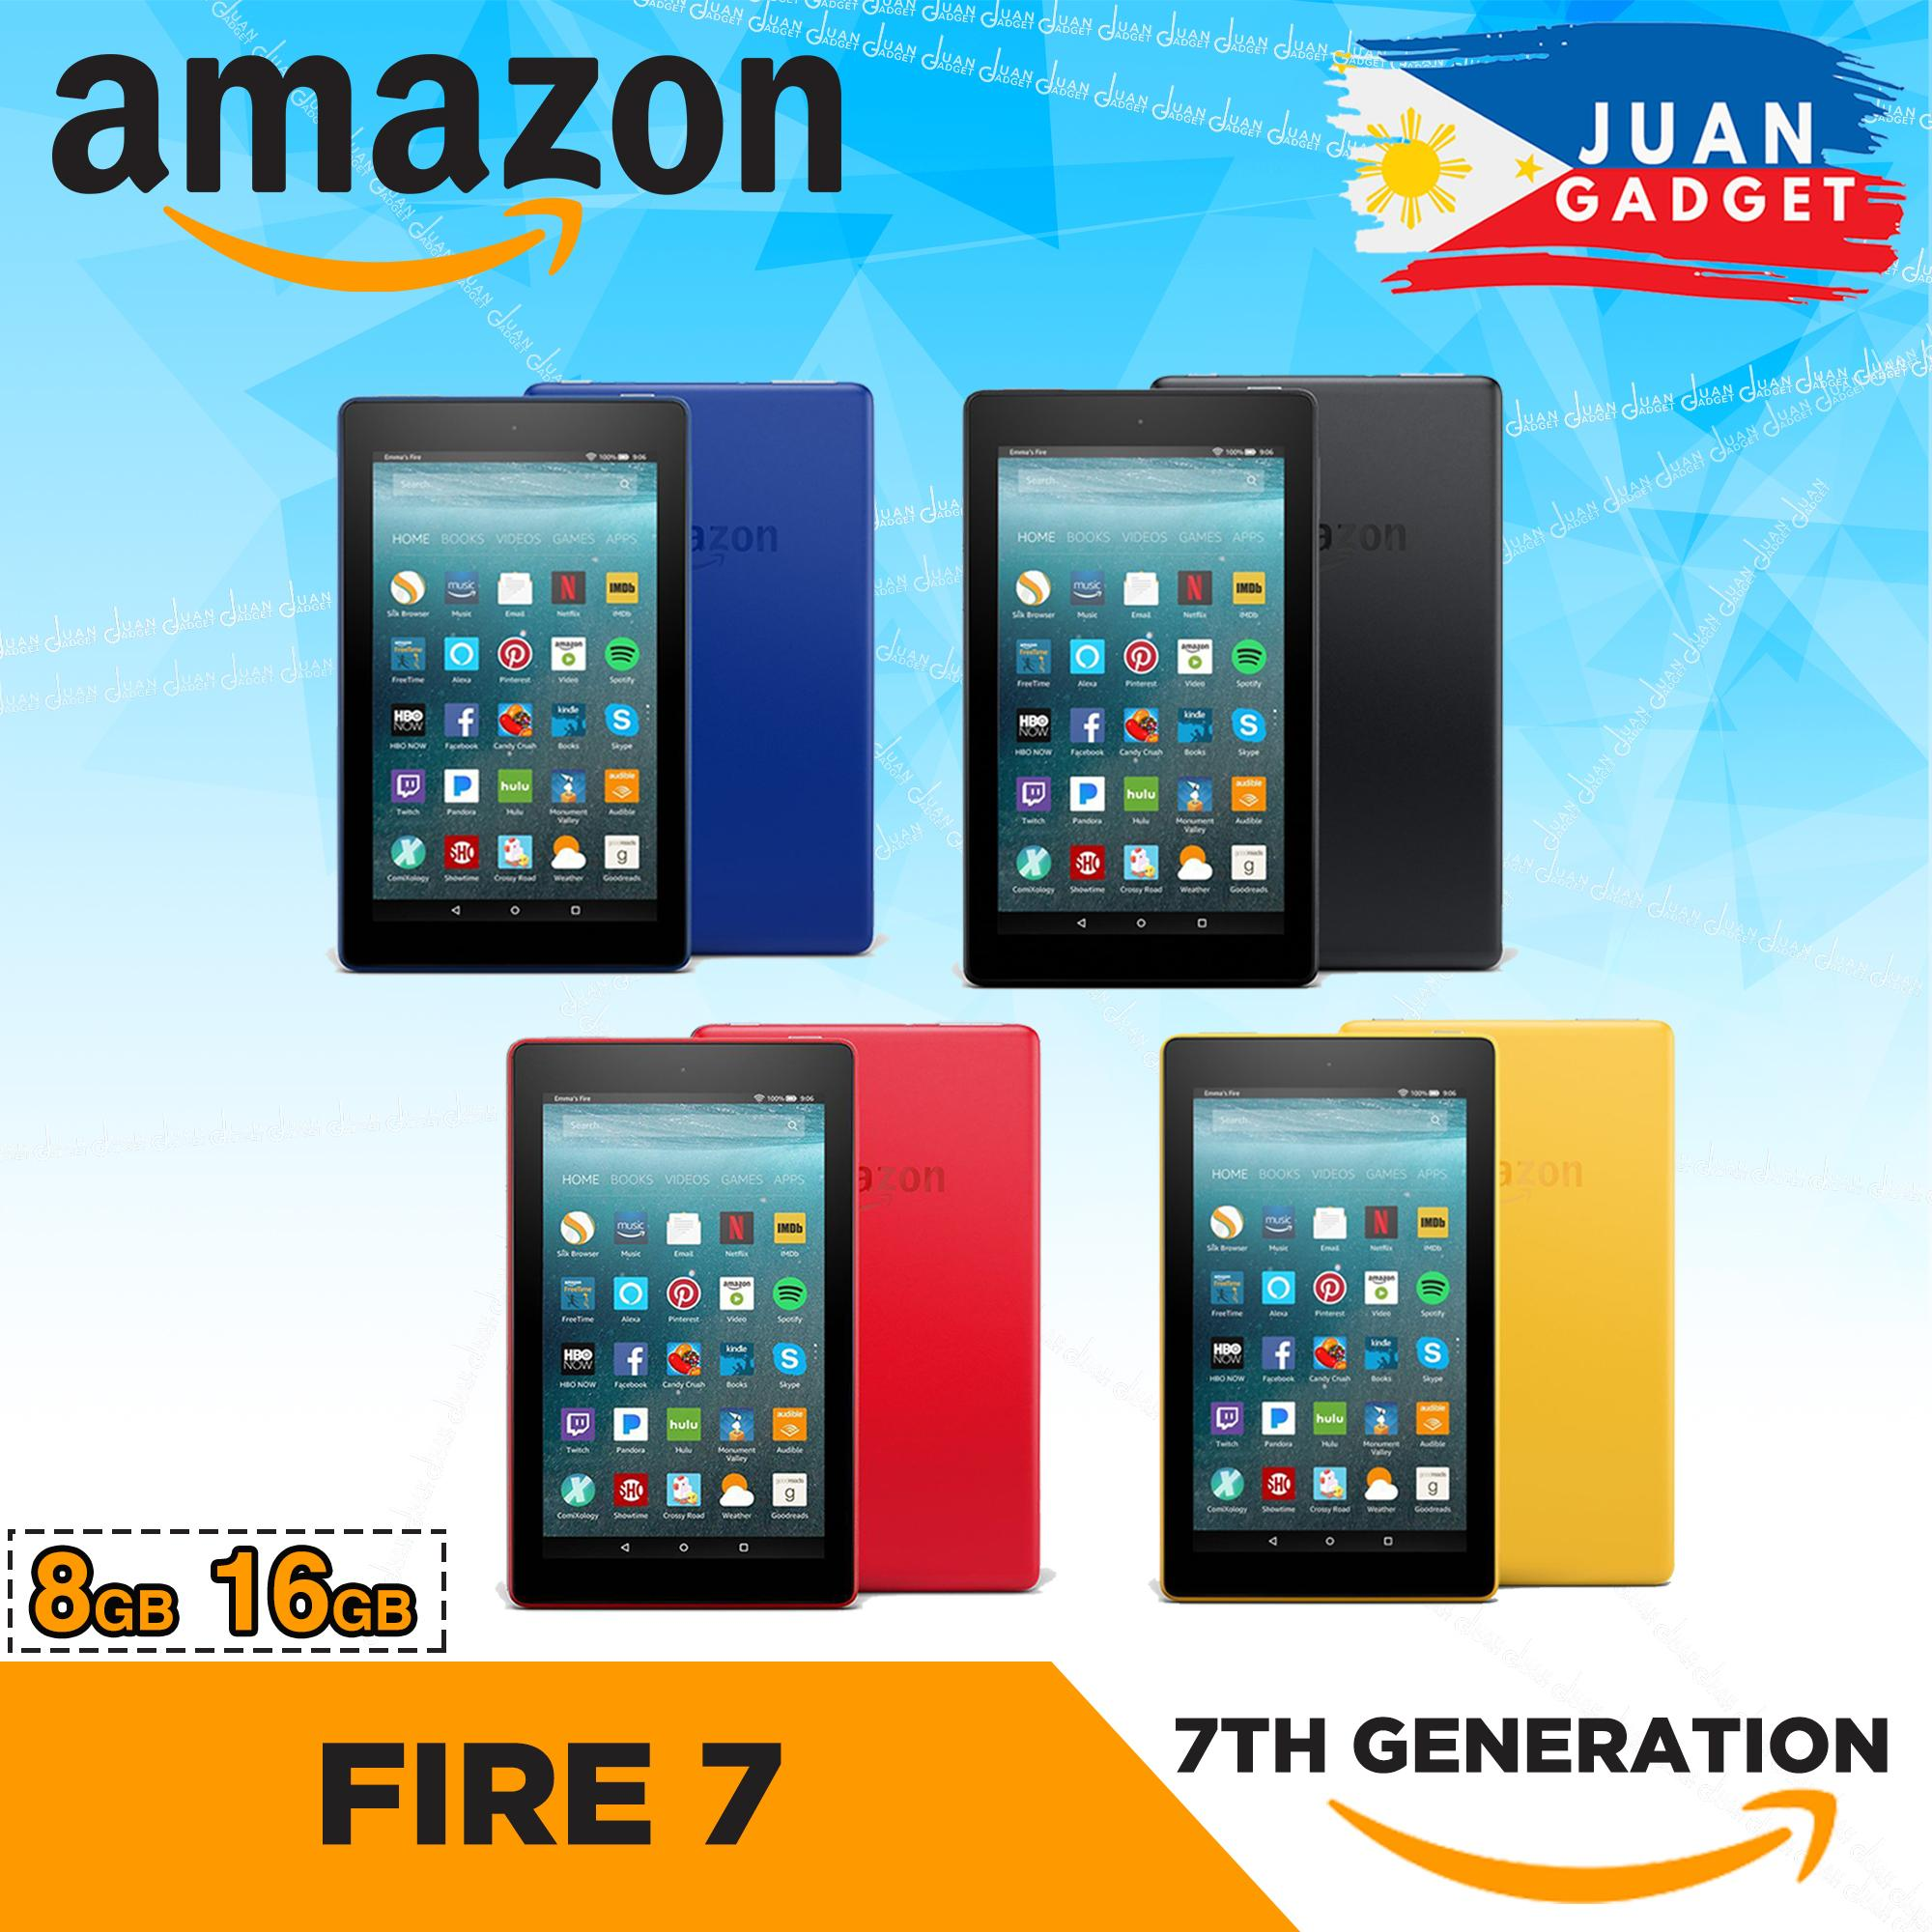 Amazon Tablet Philippines - Amazon Mobile Tablet for sale - prices